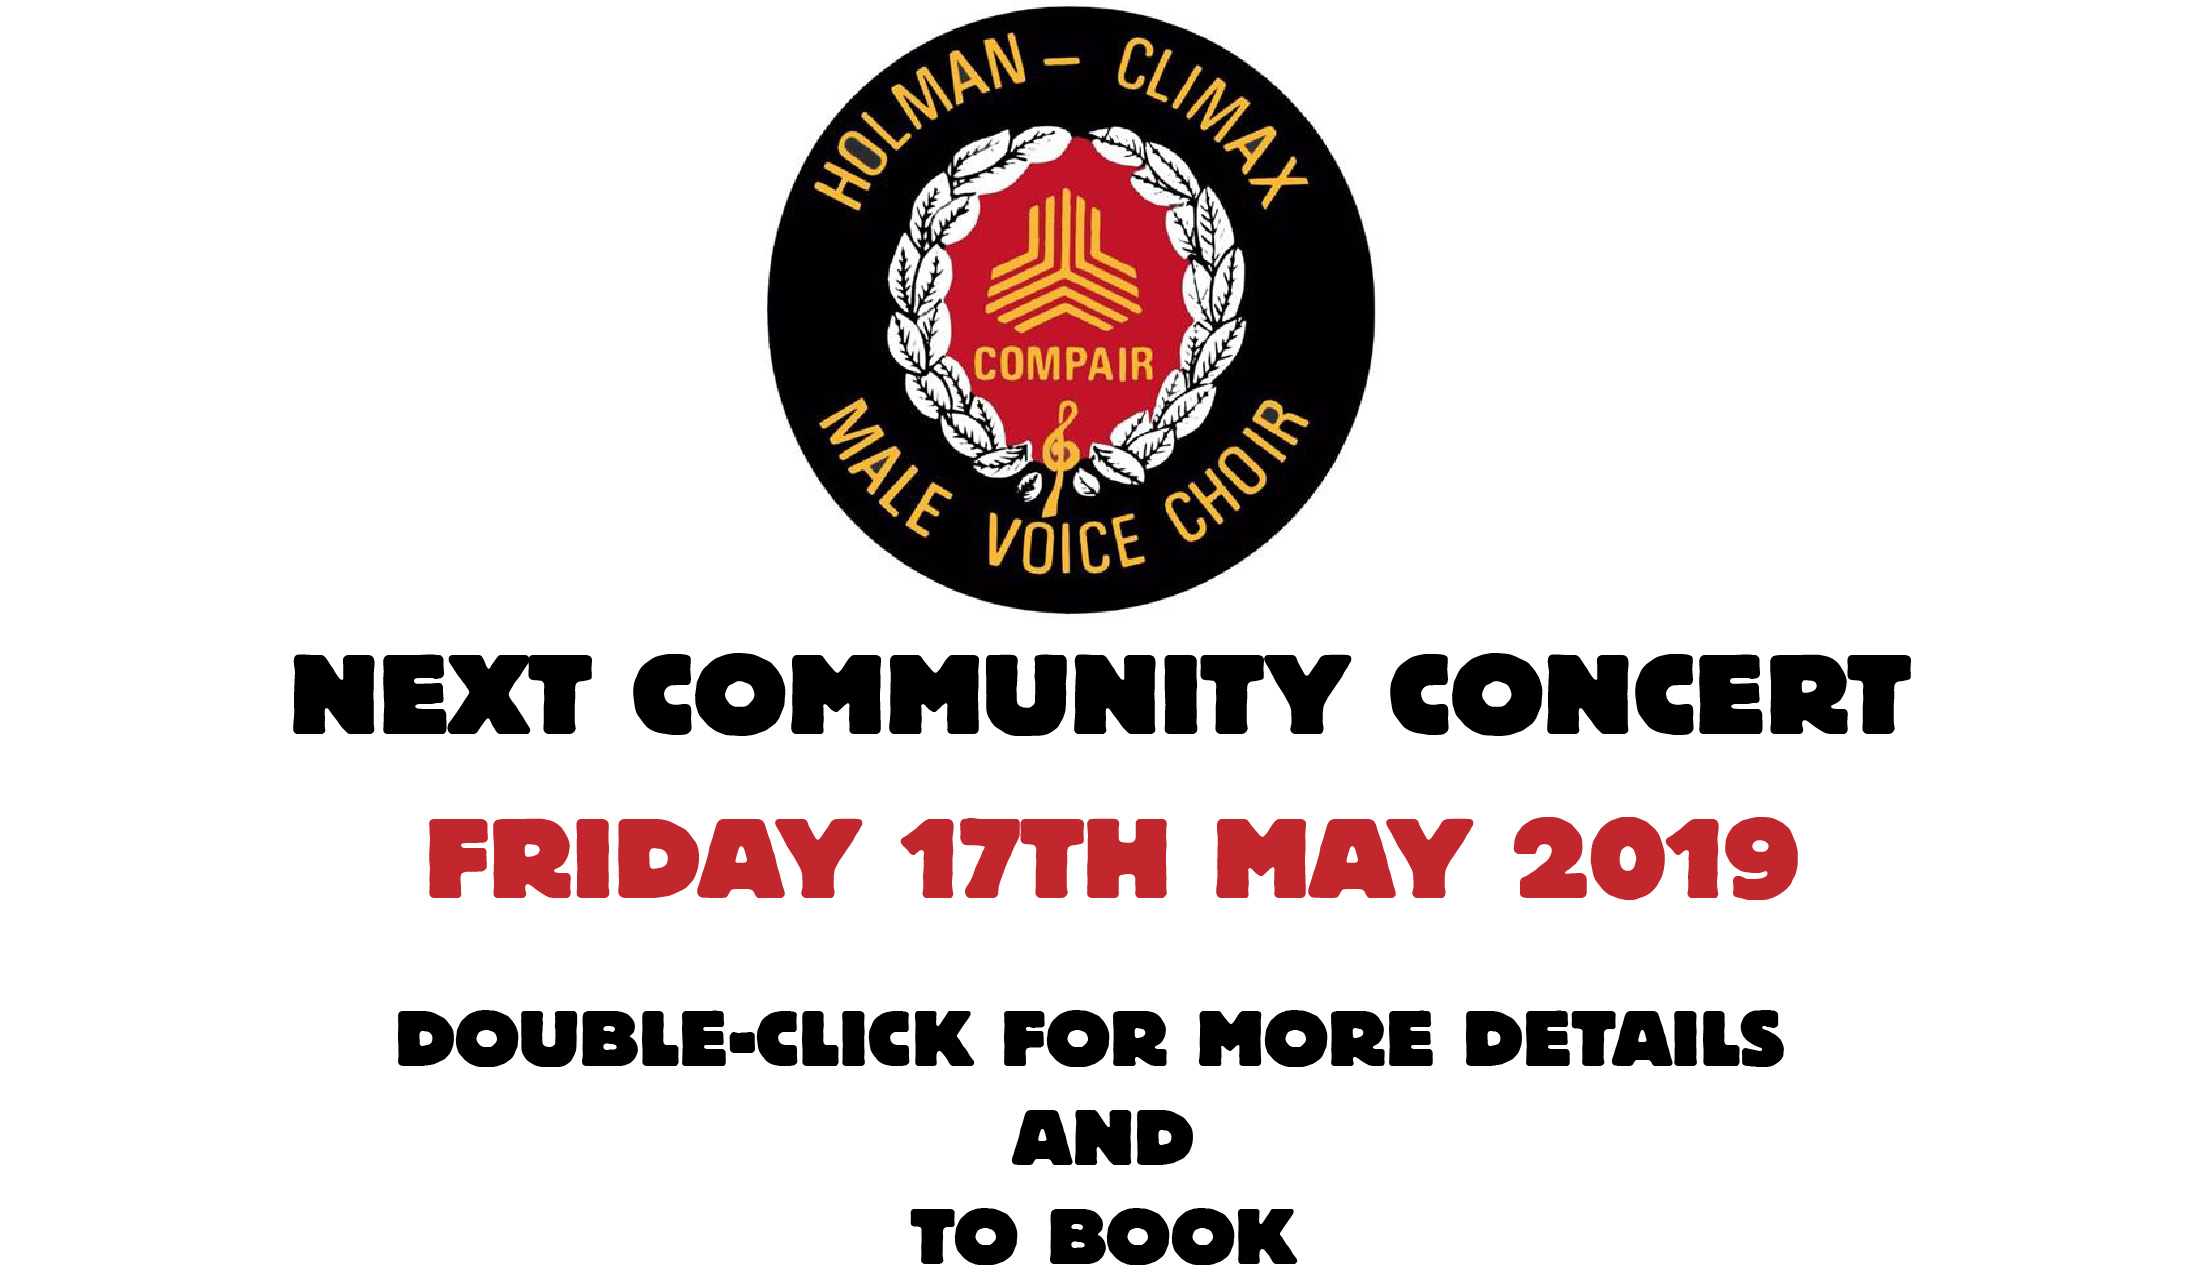 COMMUNITY CONCERT - FRIDAY 17TH MAY 2019 - DOUBLE CLICK FOR DETAILS